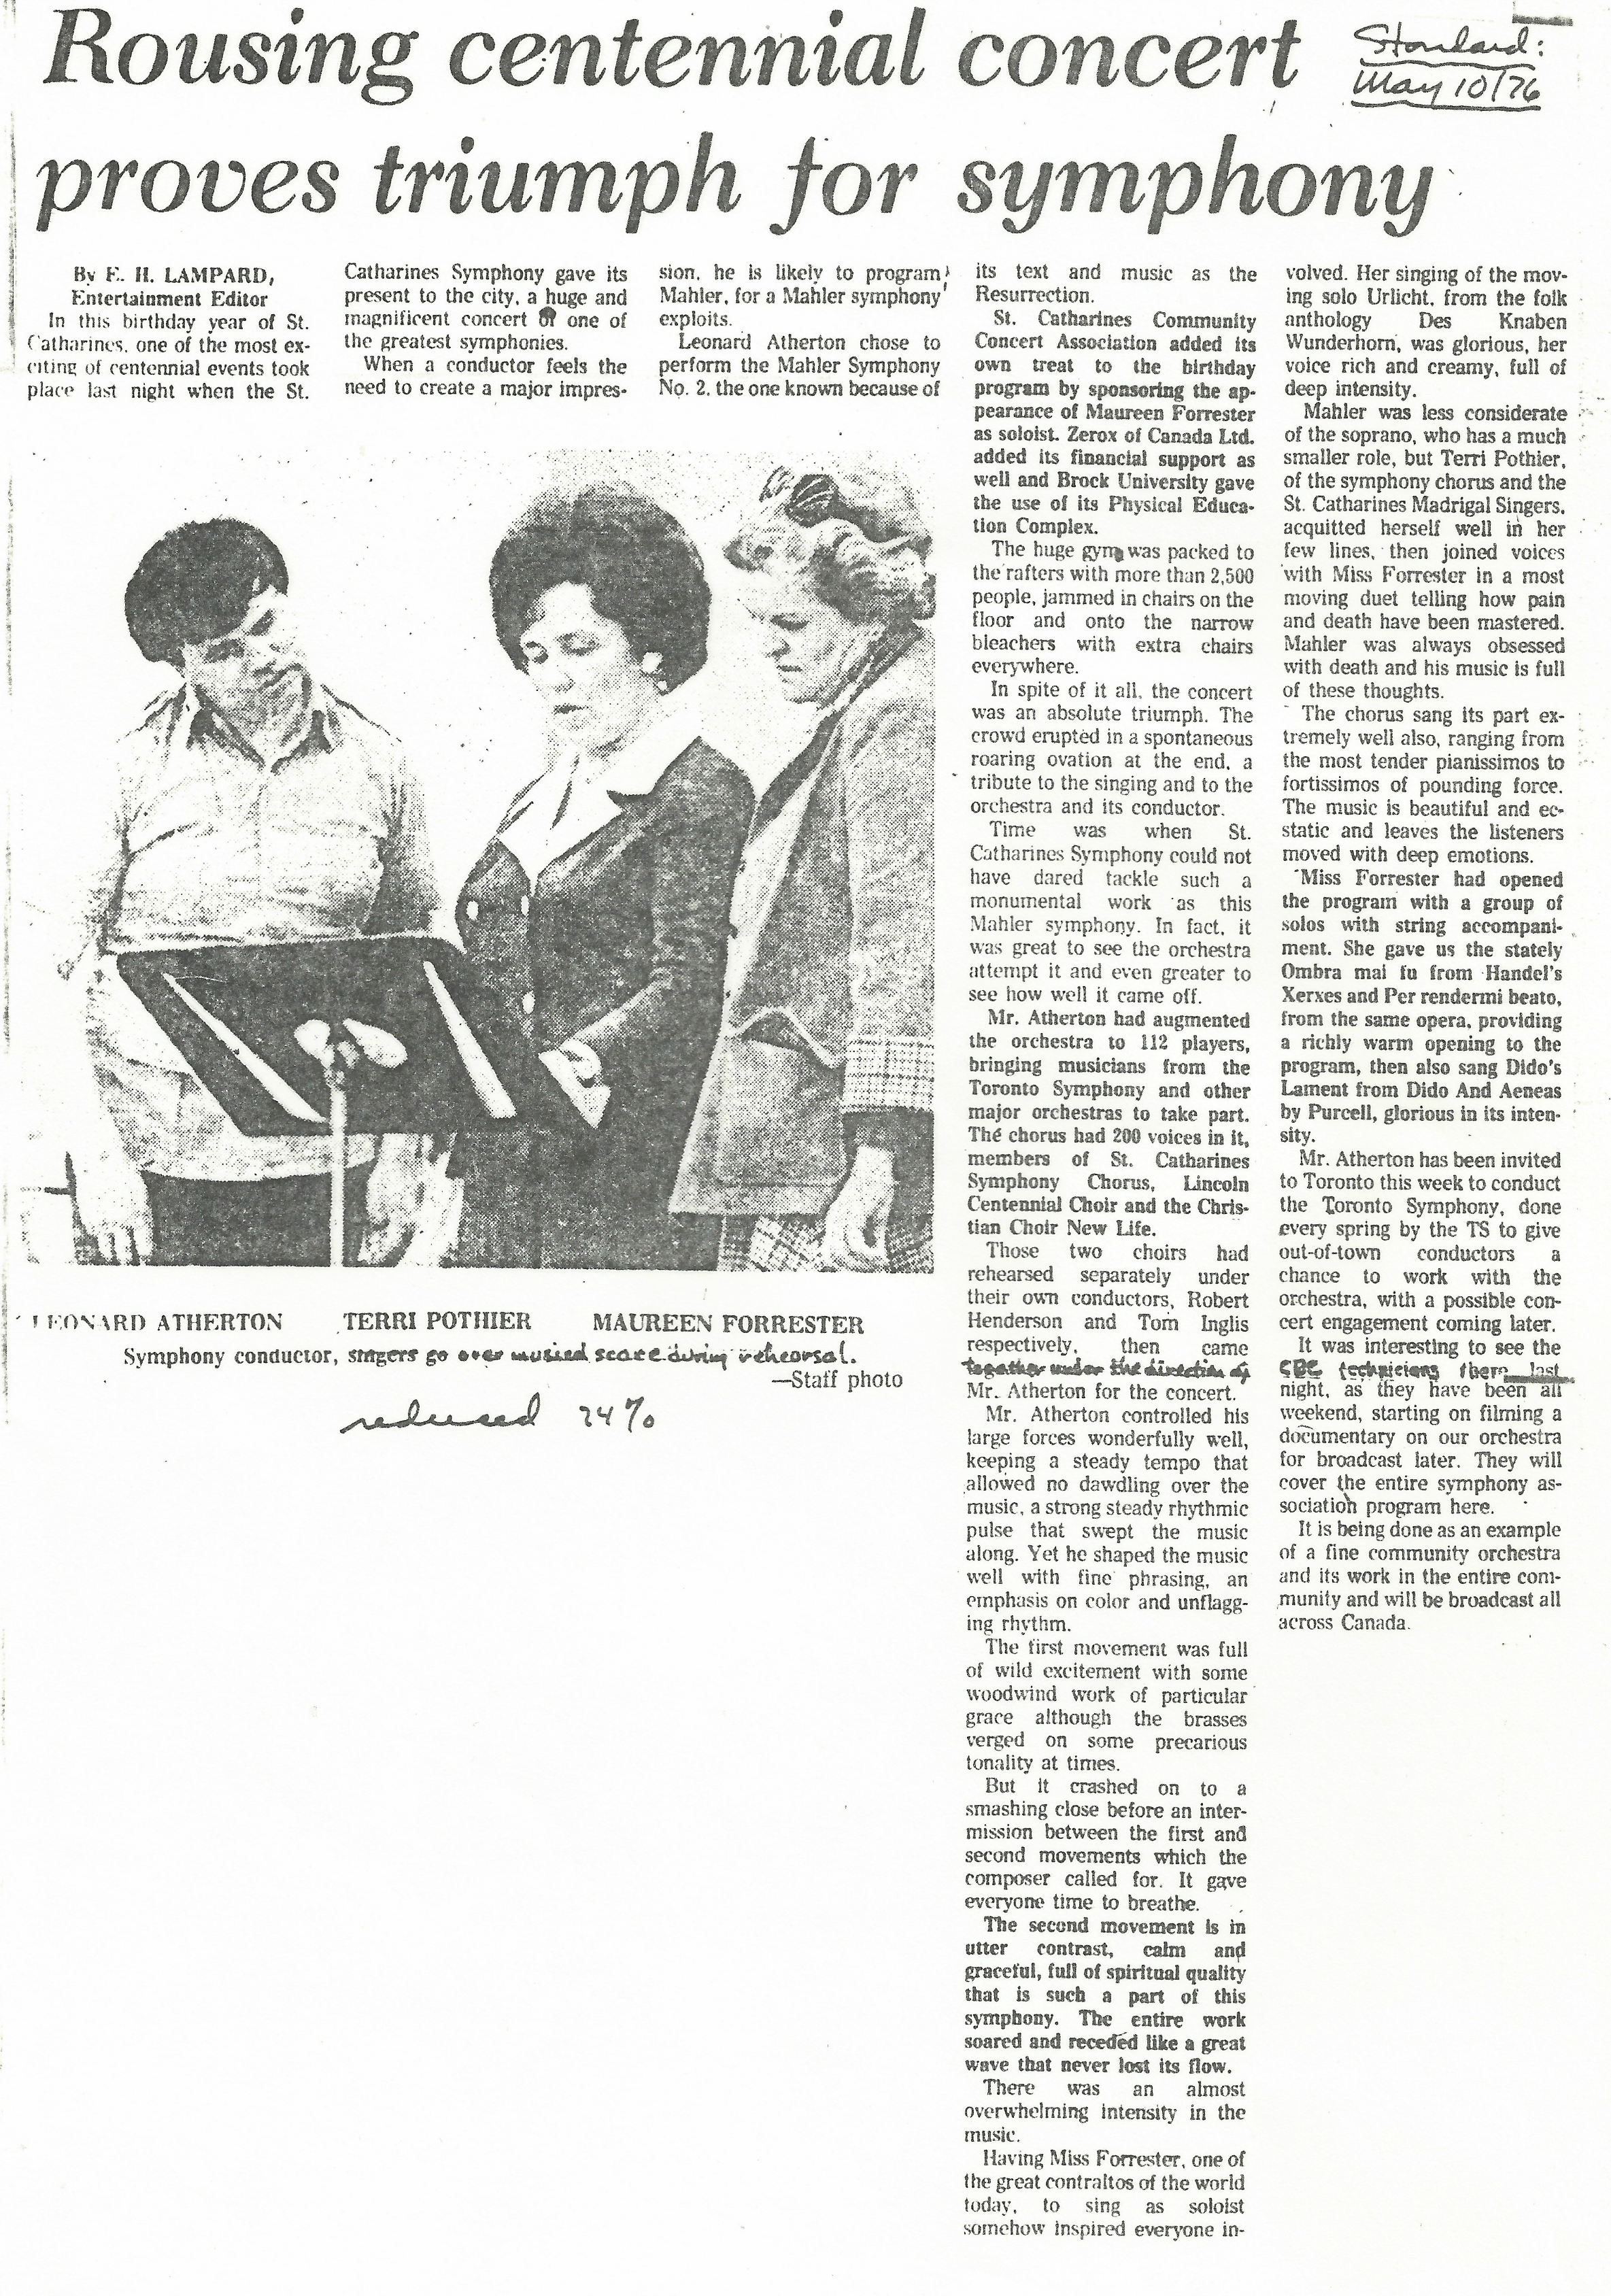 "Leonard Atherton, Terri Pothier, and Maureen Forrester look over music on stand. Newspaper article titled ""Rousing centennial concert proves triumph for symphony"""